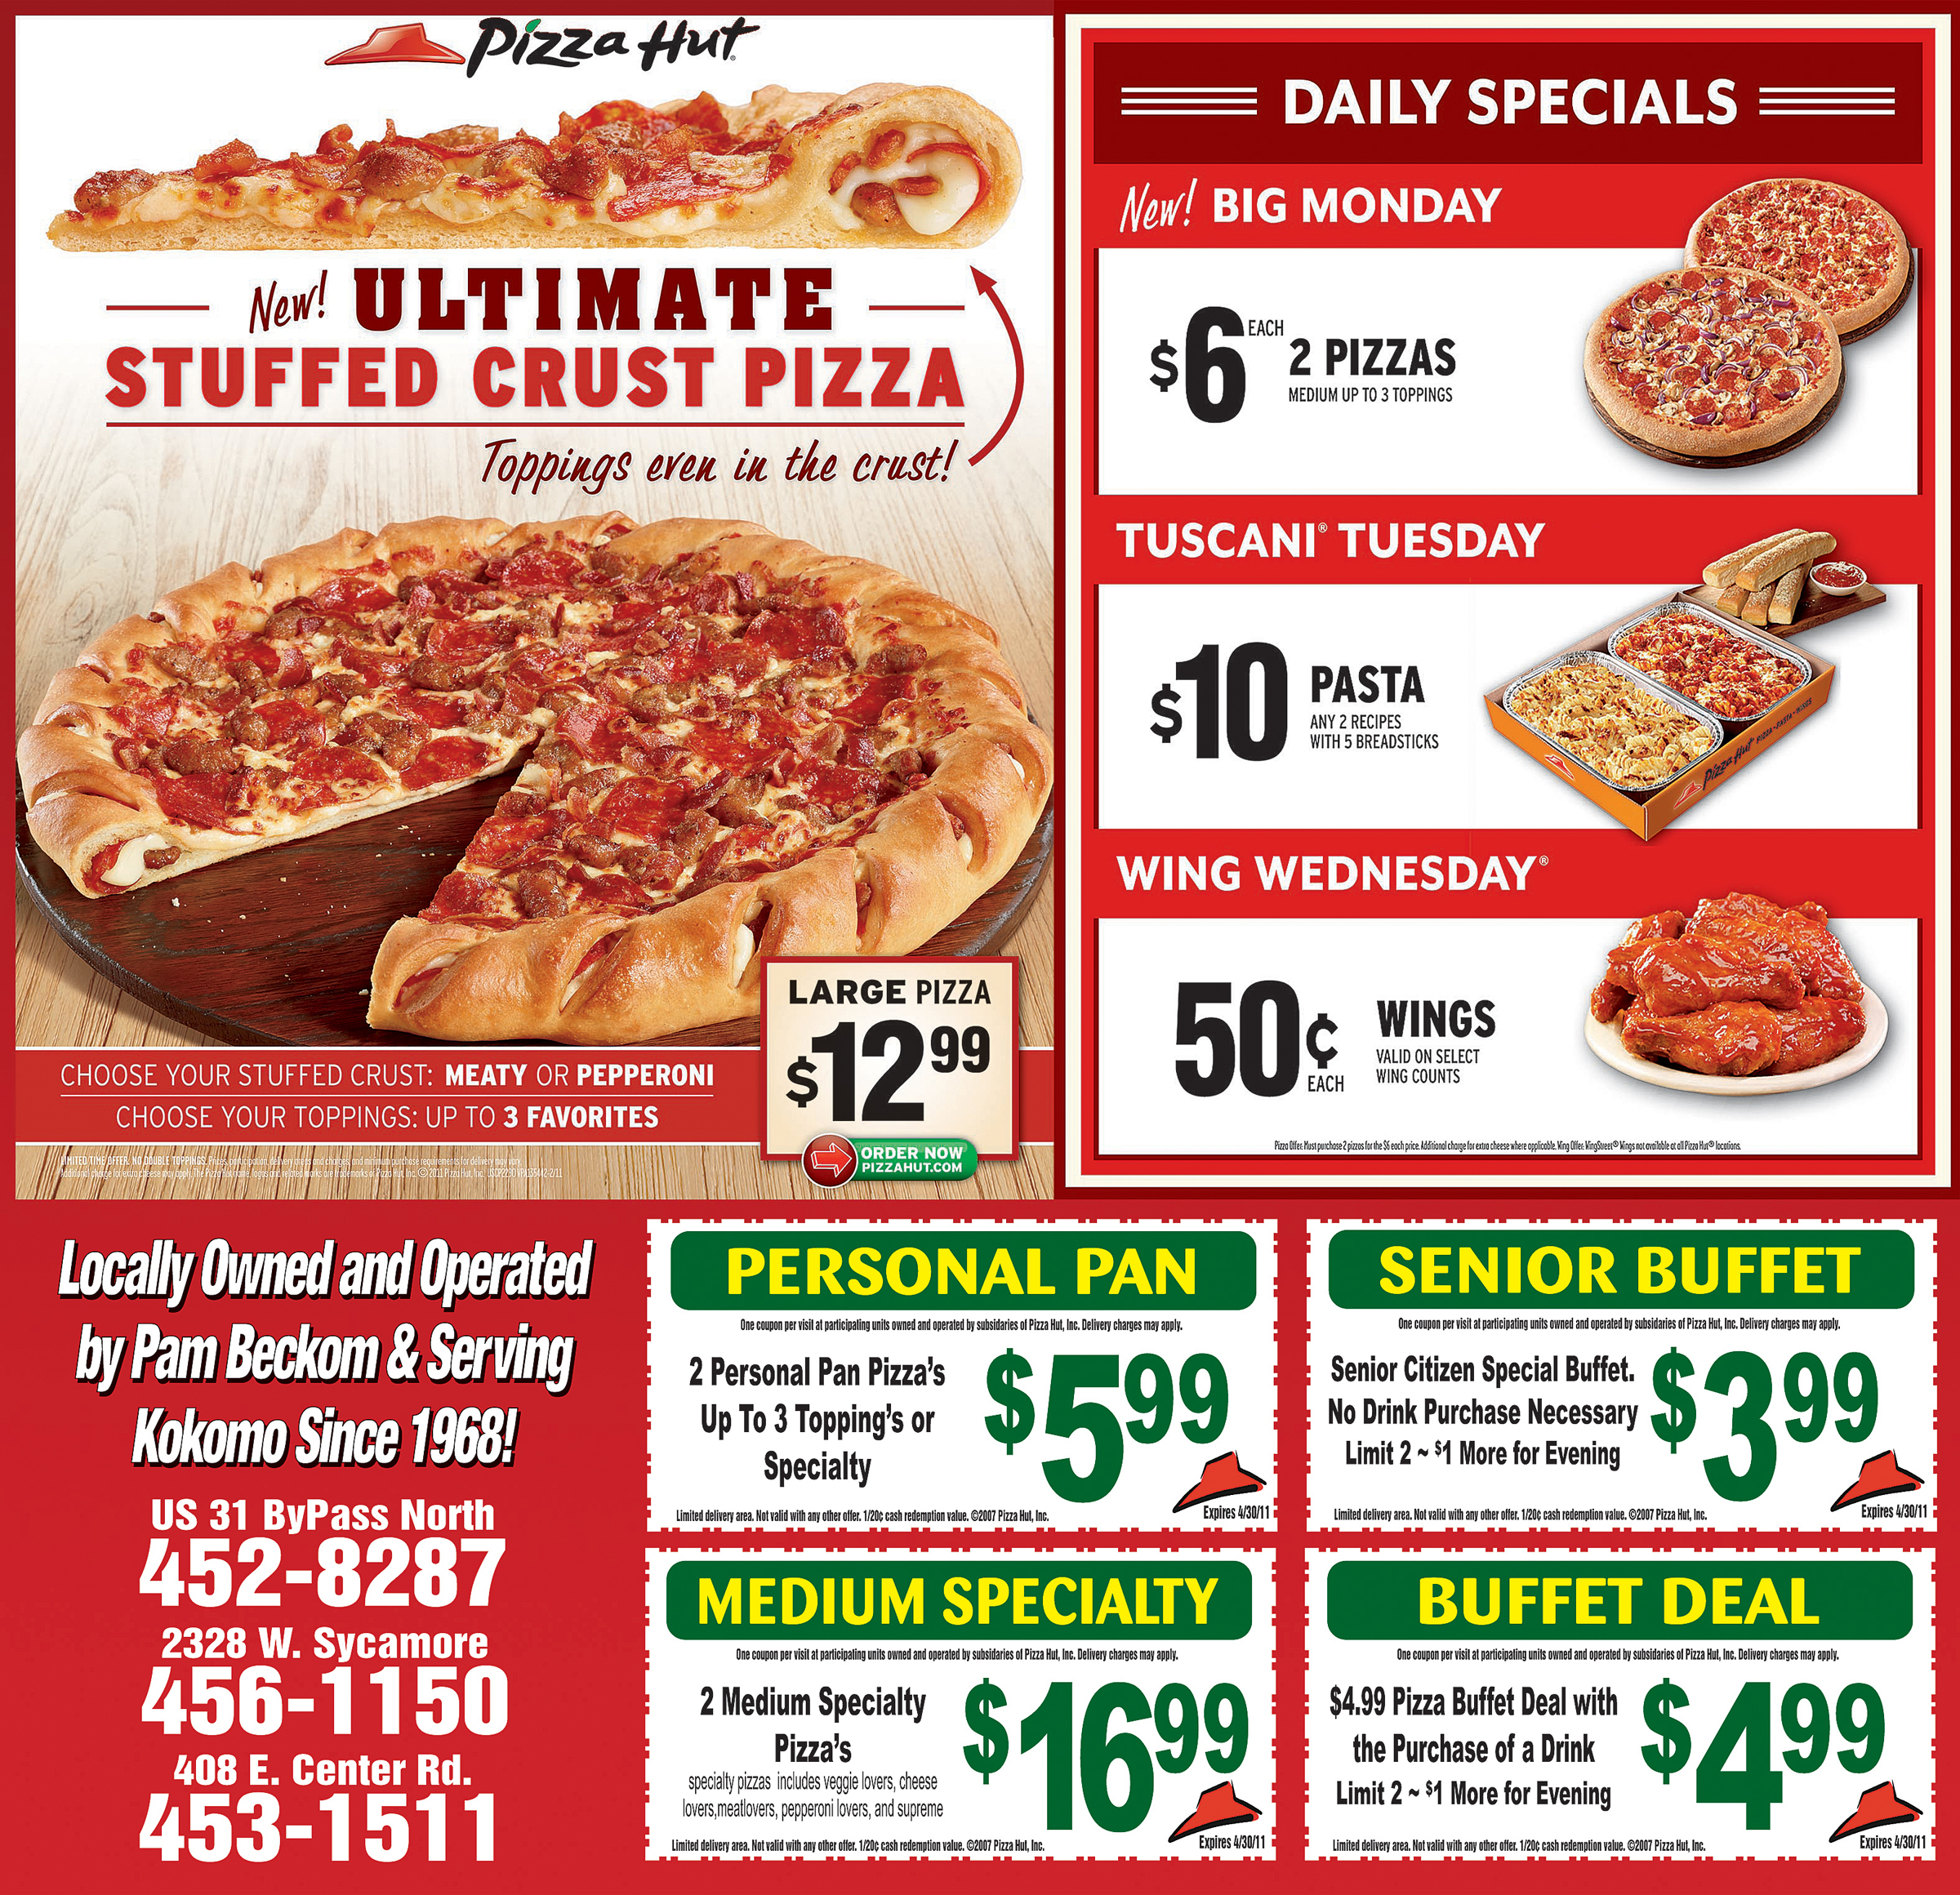 Get Your Pizza Hut Coupon | Printable Coupons Online - Free Printable Round Table Pizza Coupons